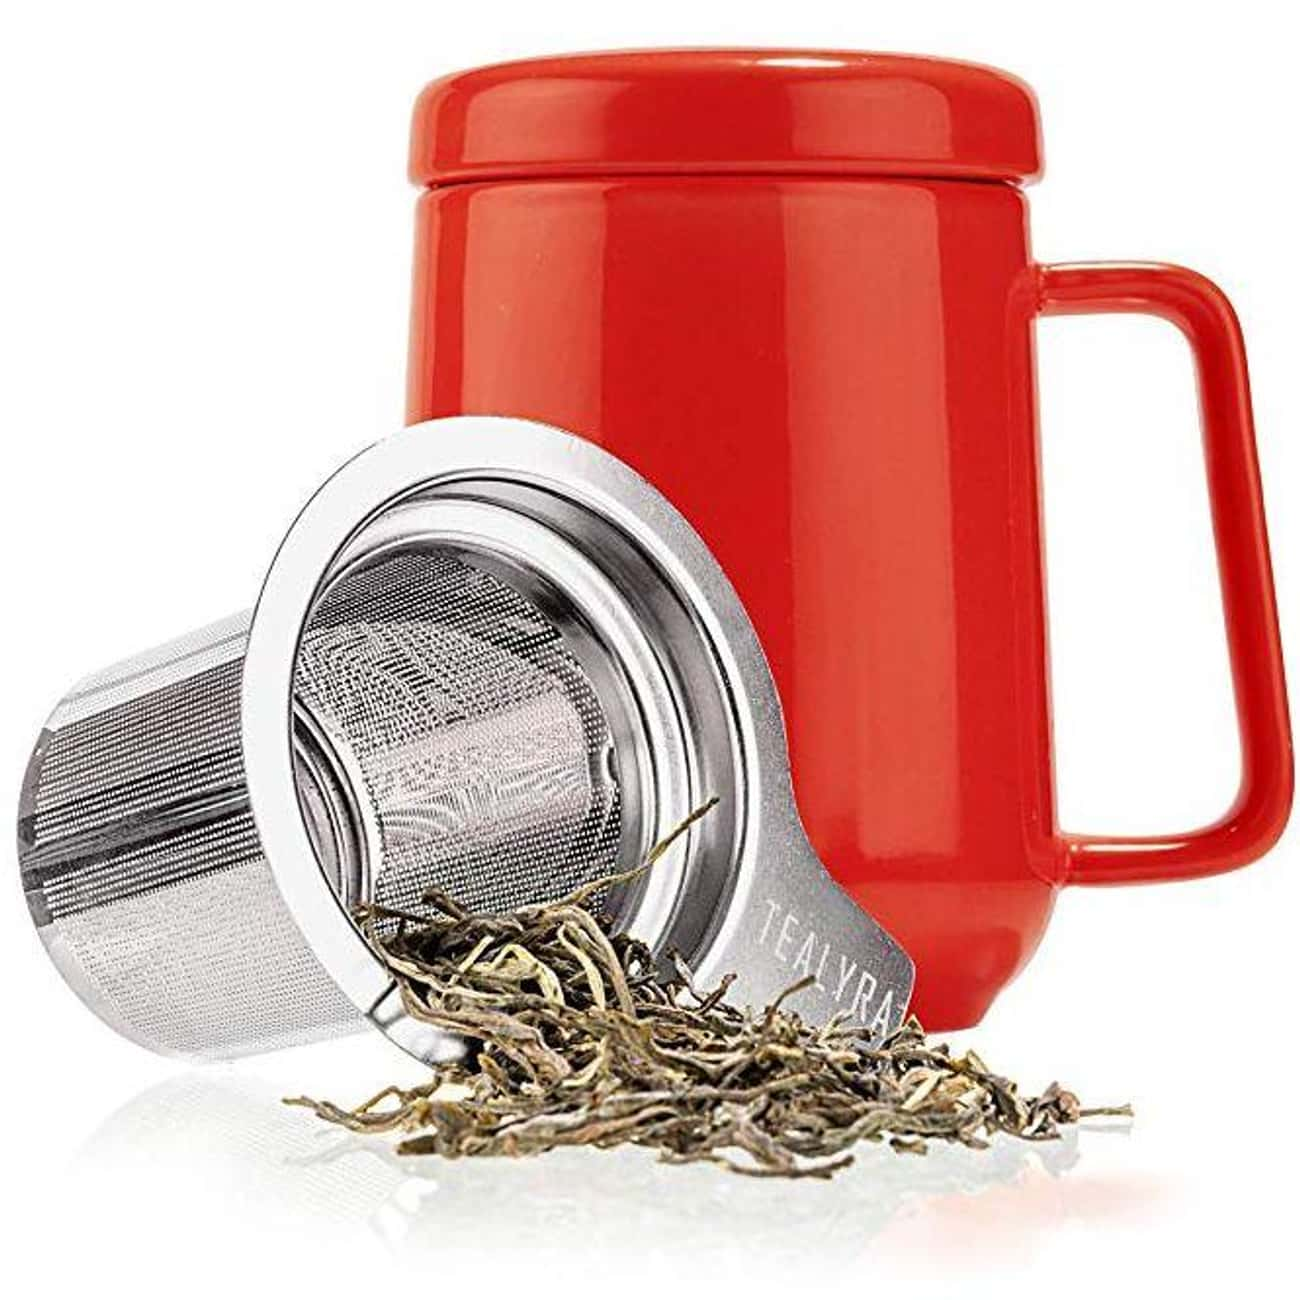 Peak Ceramic Red Tea Cup Infus is listed (or ranked) 4 on the list The Best Secret Santa Gifts